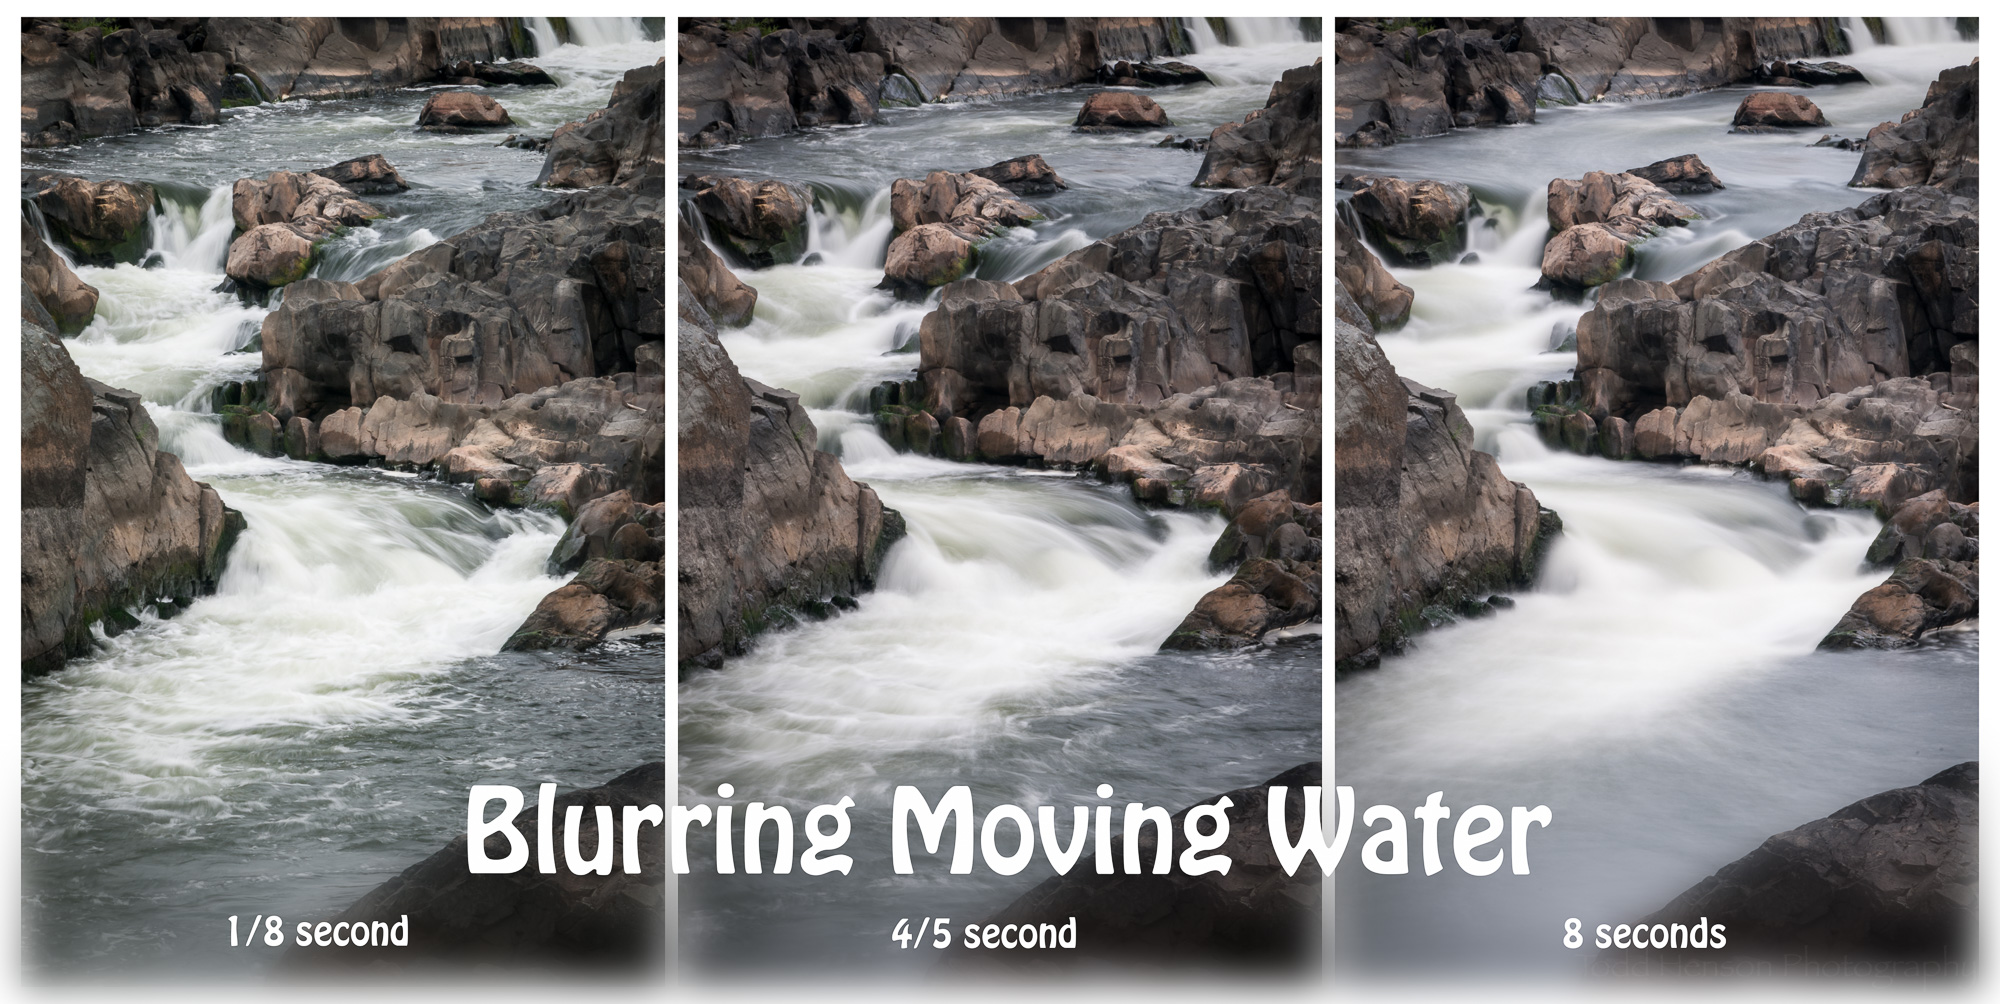 Blurring Moving Water